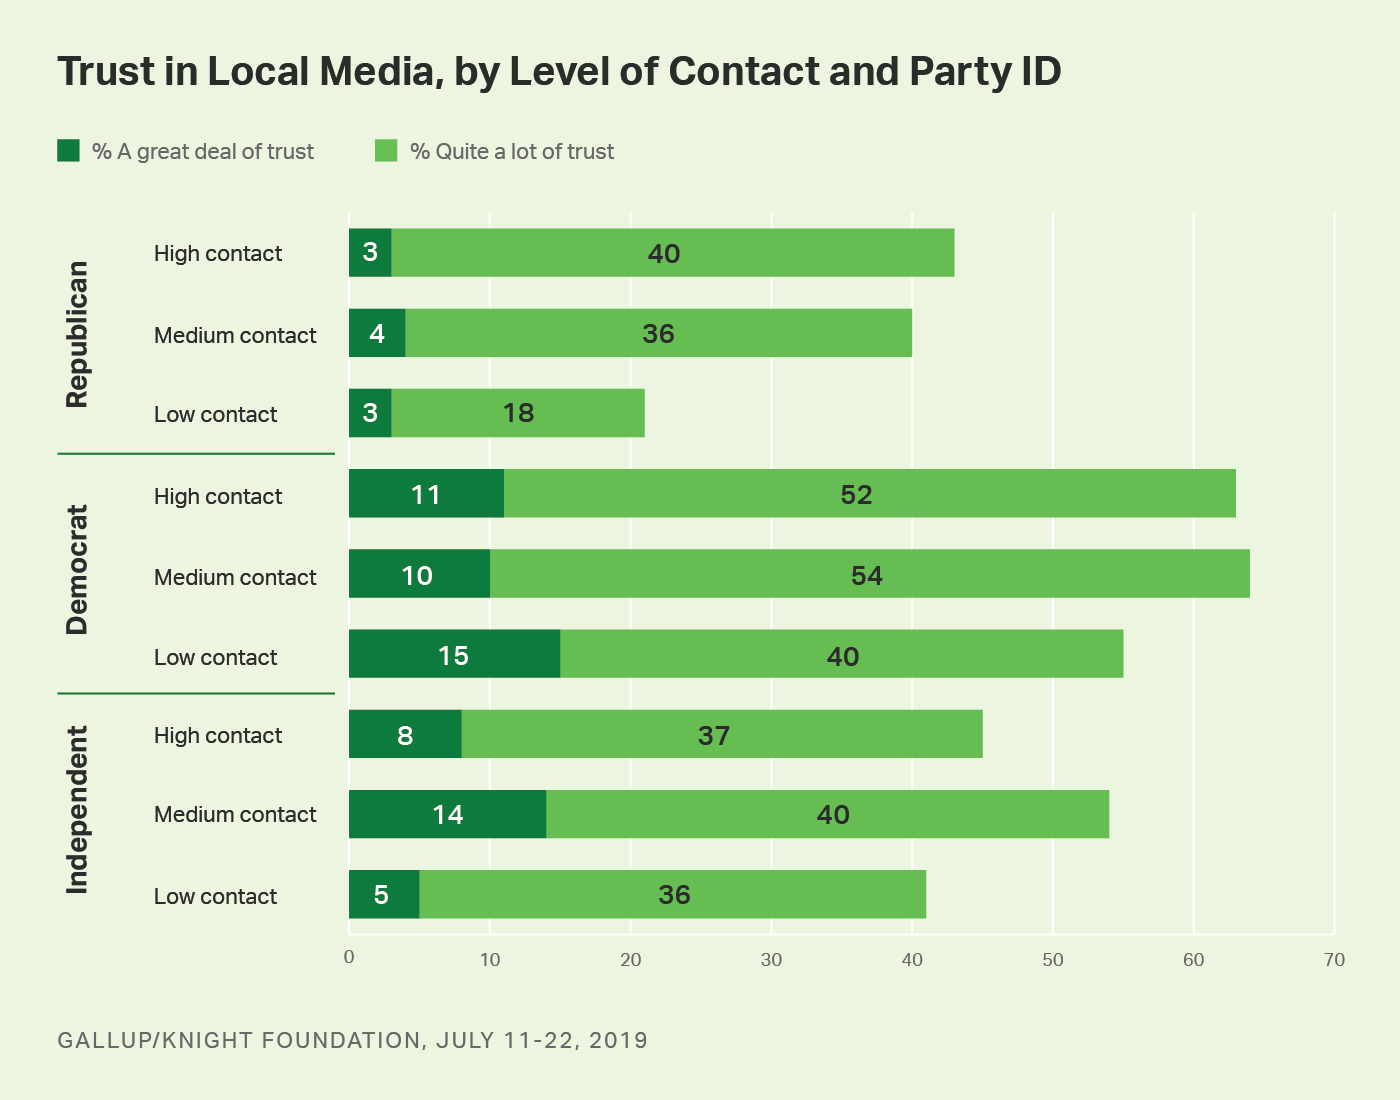 Bar graph. Americans' level of trust and contact with local media by party affiliation.